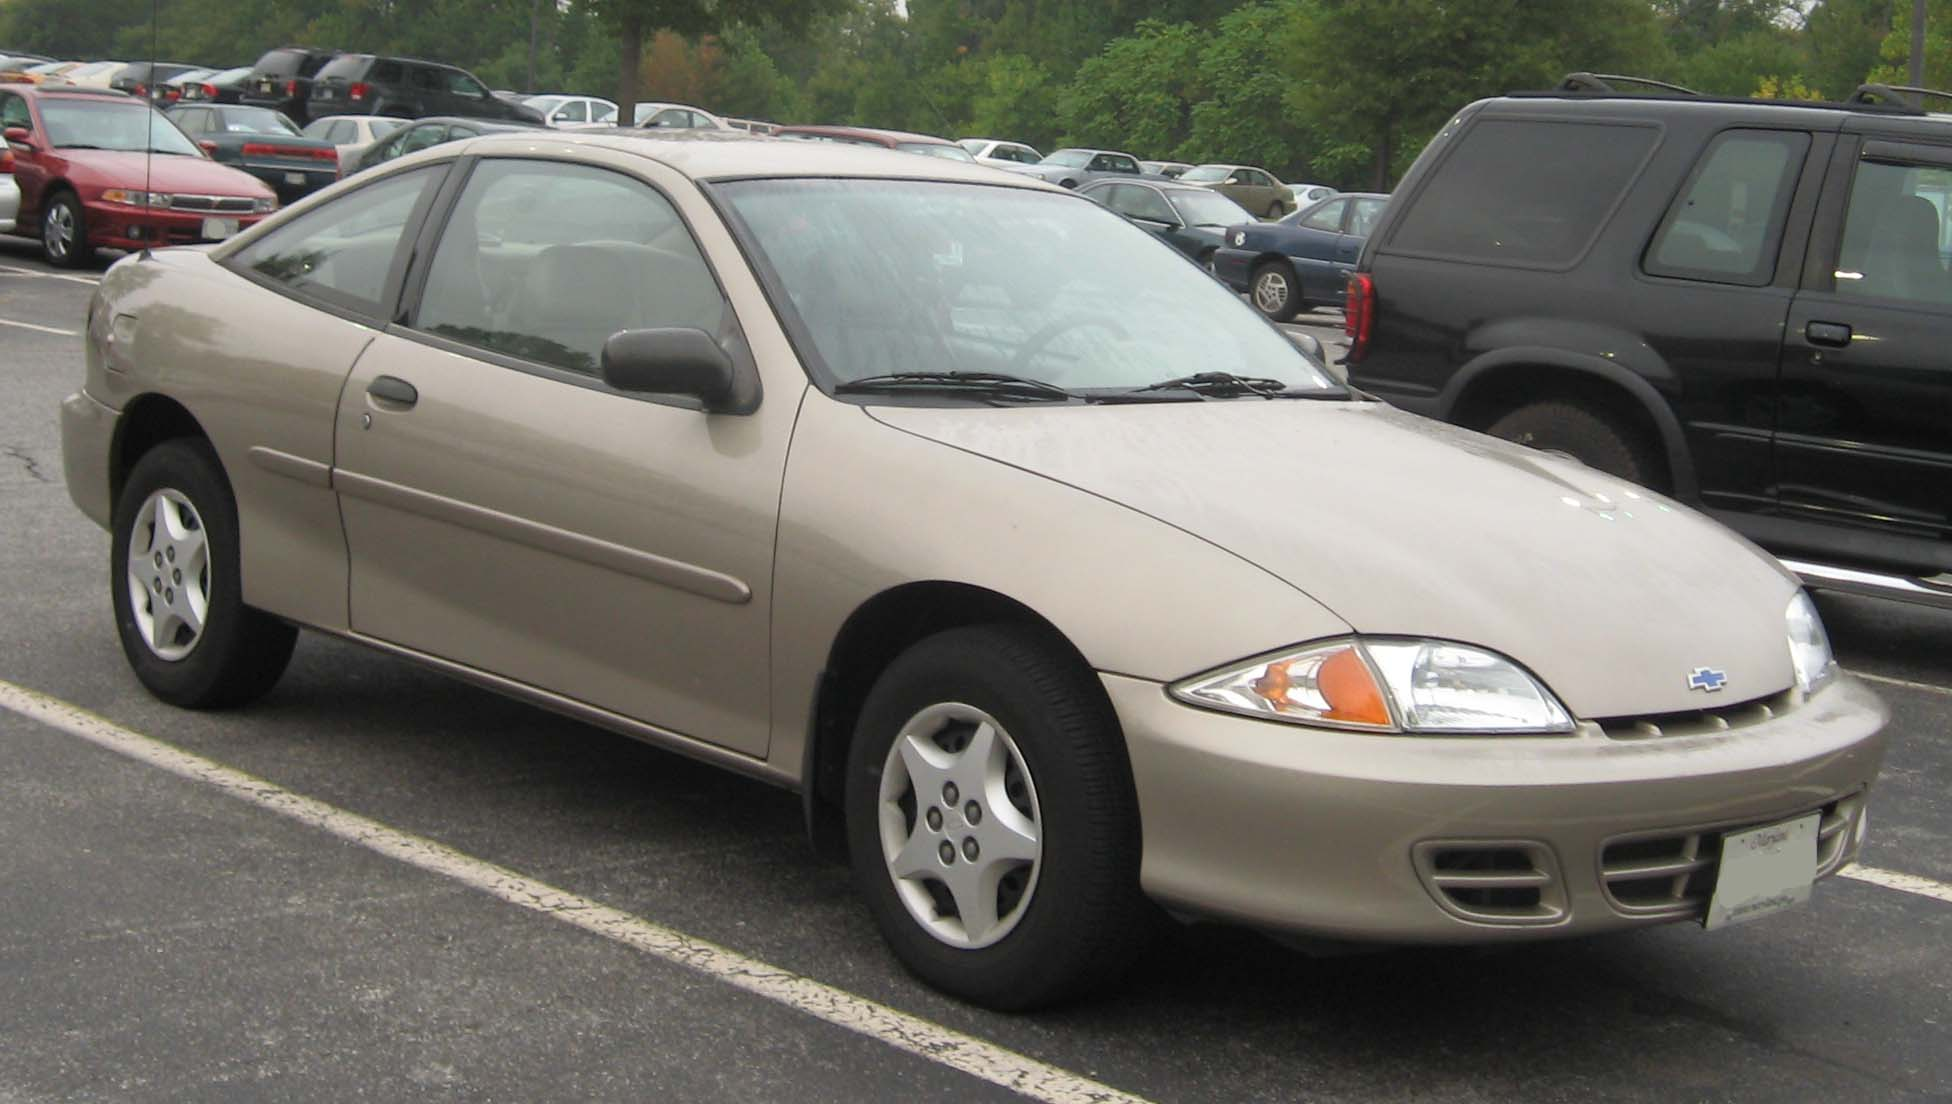 2000 chevrolet cavalier. Chevrolet Cavalier – Front. More images